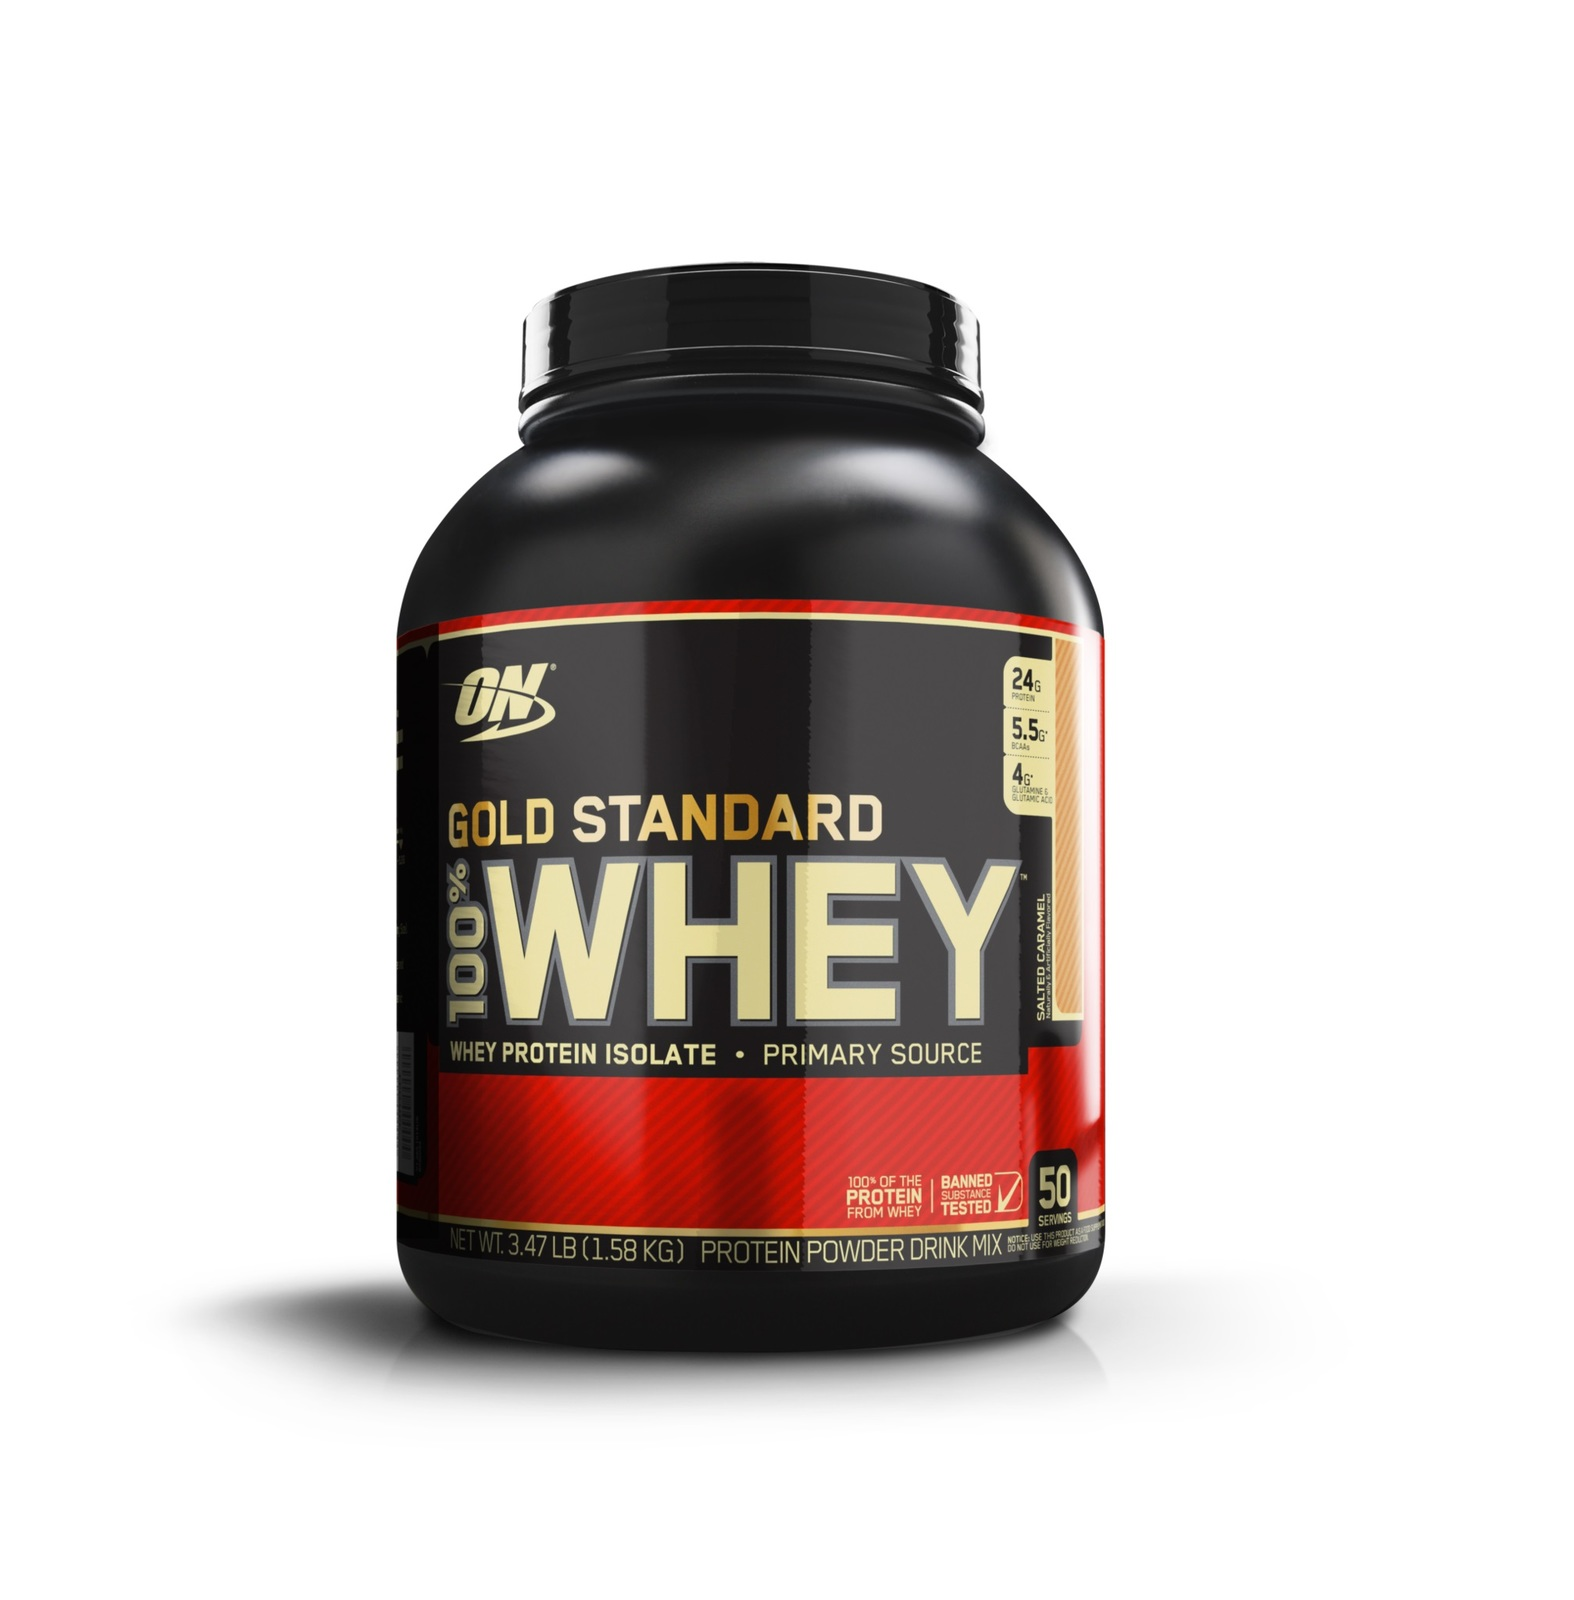 Optimum Nutrition Gold Standard 100% Whey - Strawberry Banana (2.27kg) image